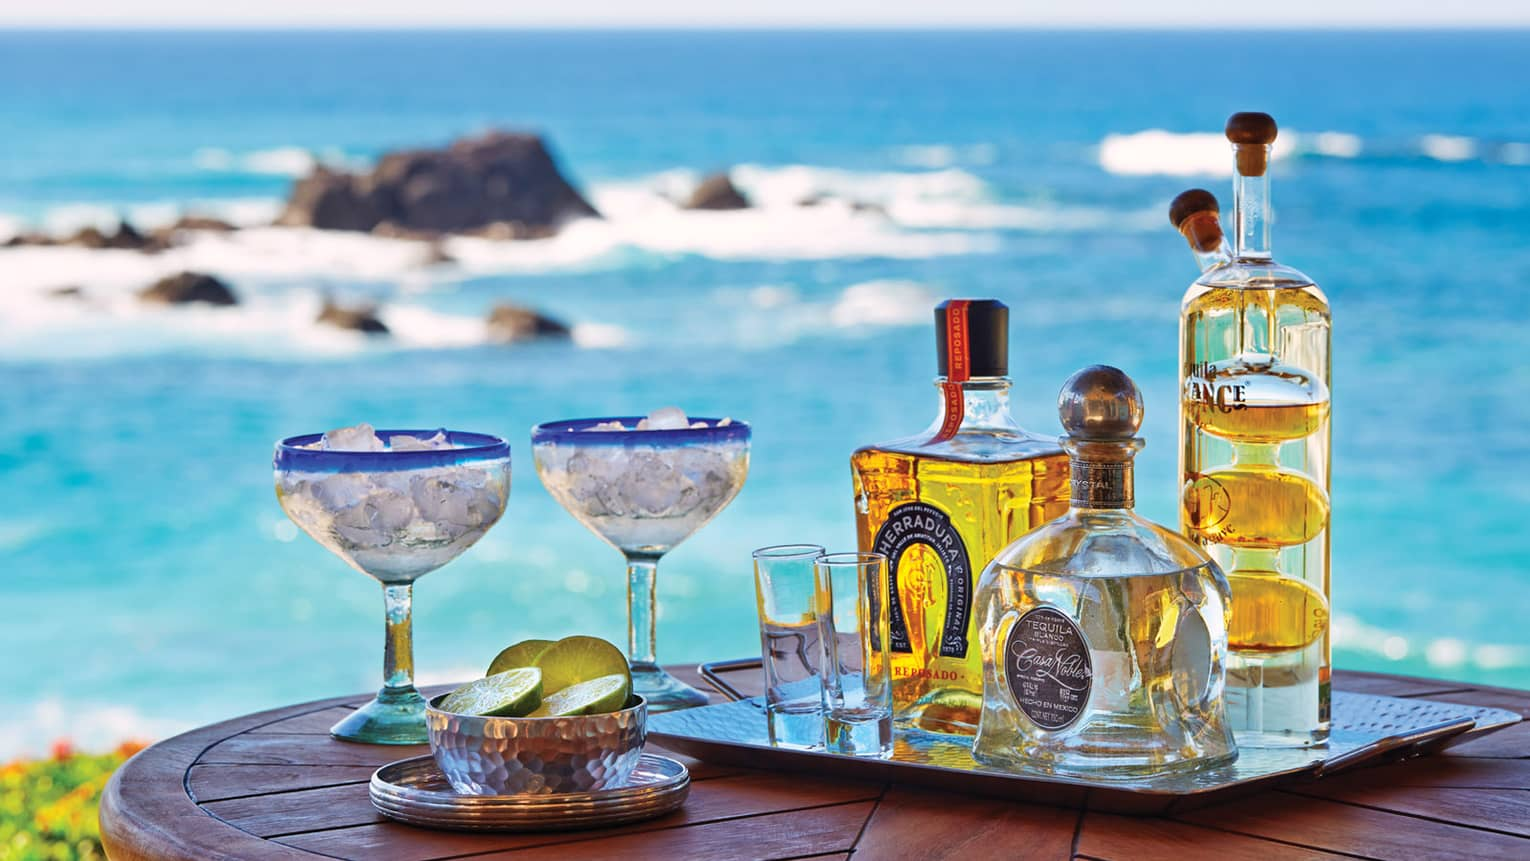 Close-up of Cora Lounge table, tray with tequila bottles, two margarita glasses with ice, bowl of limes